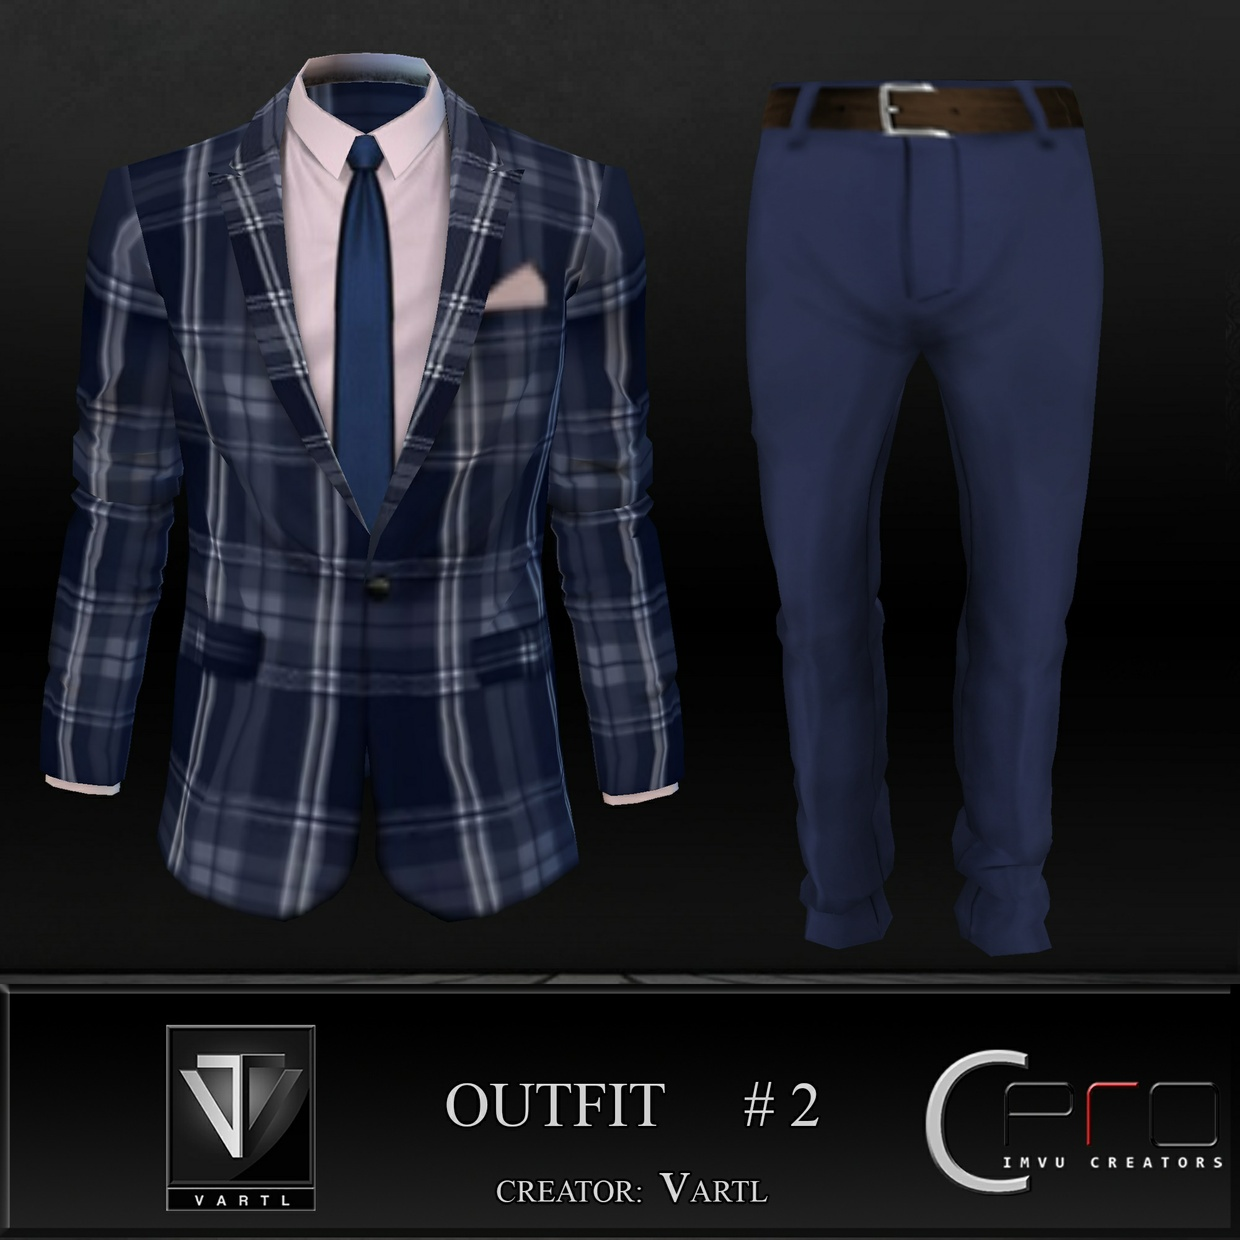 VT OUTFIT #2